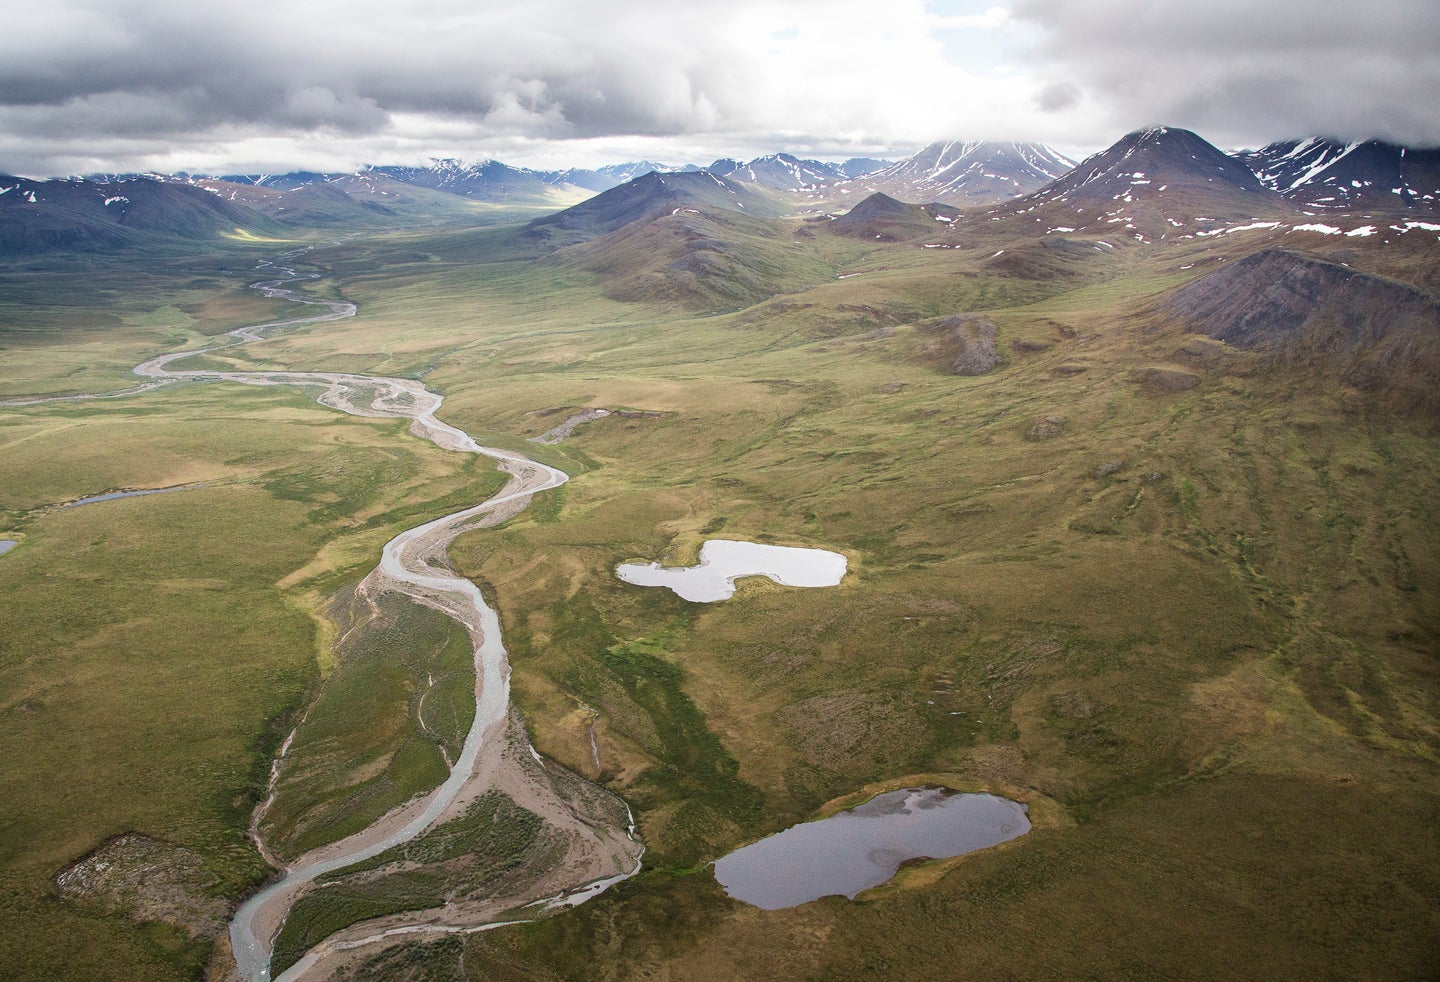 The Central Arctic Management Area - a BLM Wilderness Study Area - sits between NPRA and Gates of the Arctic National Park in Alaska. This little known 320,000 acre area is starkly beautiful and made up of rolling tundra and snow covered peaks.